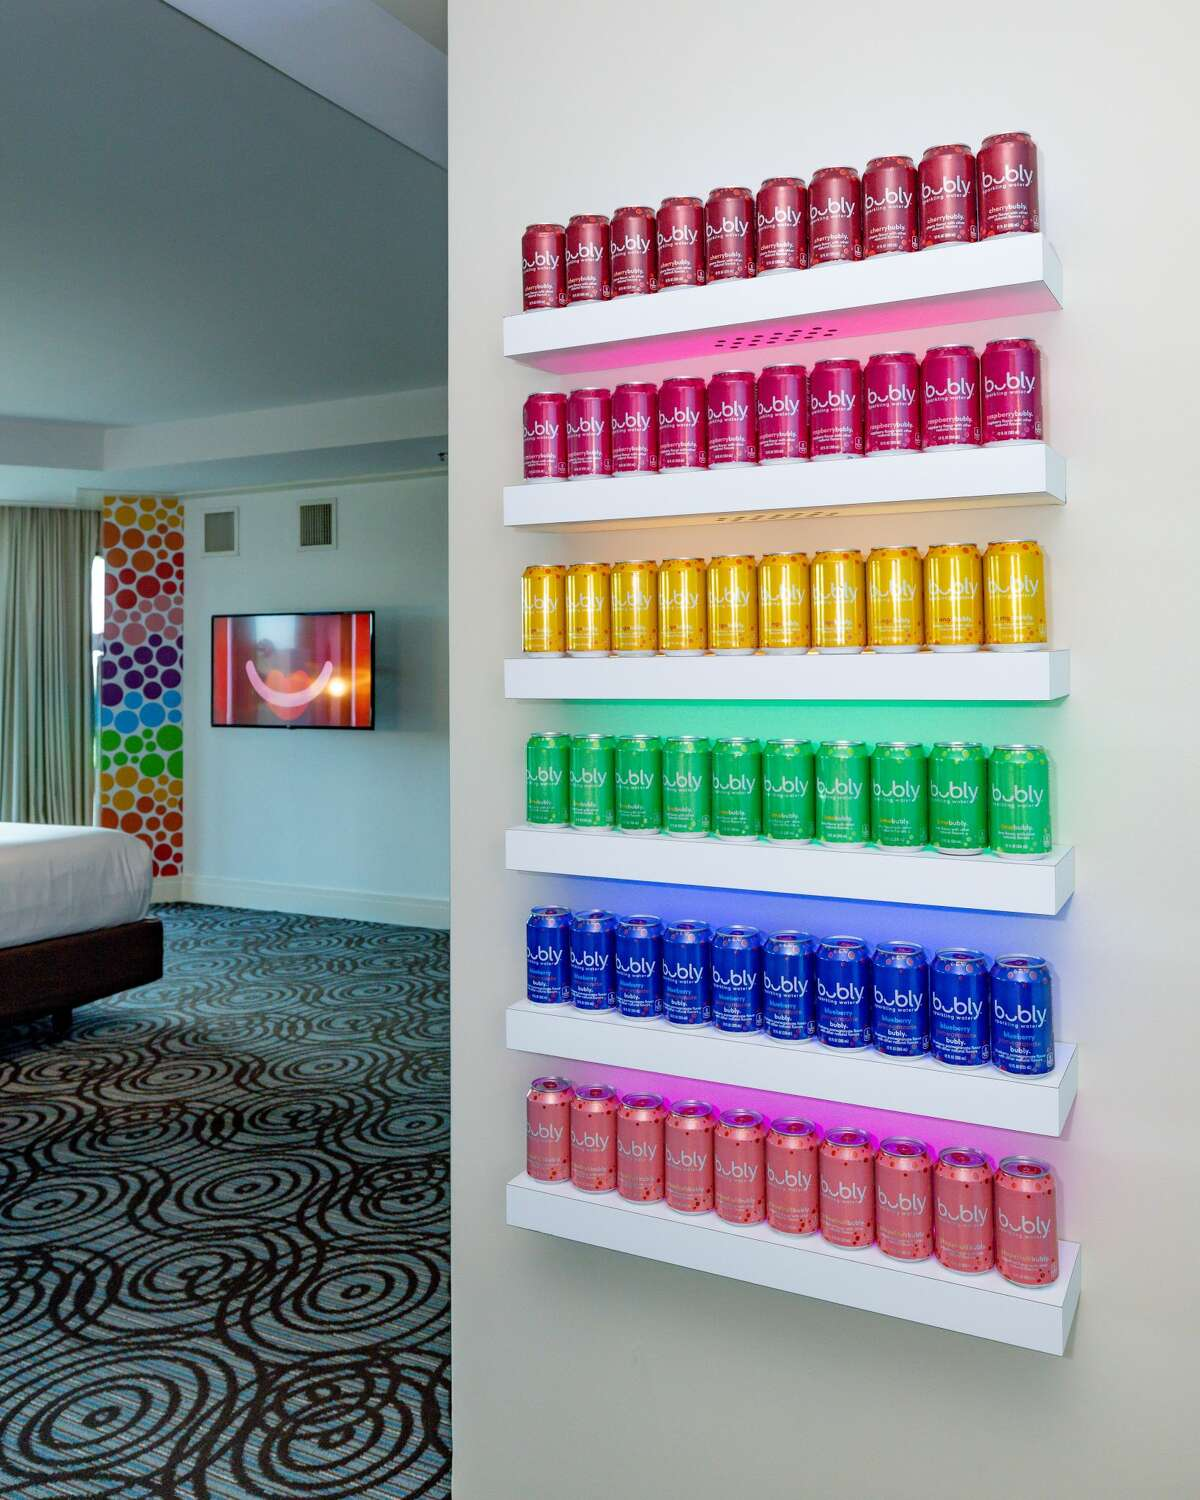 Interactive installations include an Instagram-ready Magic Mirror, a custom-designed centerpiece rainbow couch in the shape of the beverage company's signature smile logo, an in-suite bar with bubly products and a light-up rainbow wall made from cans.